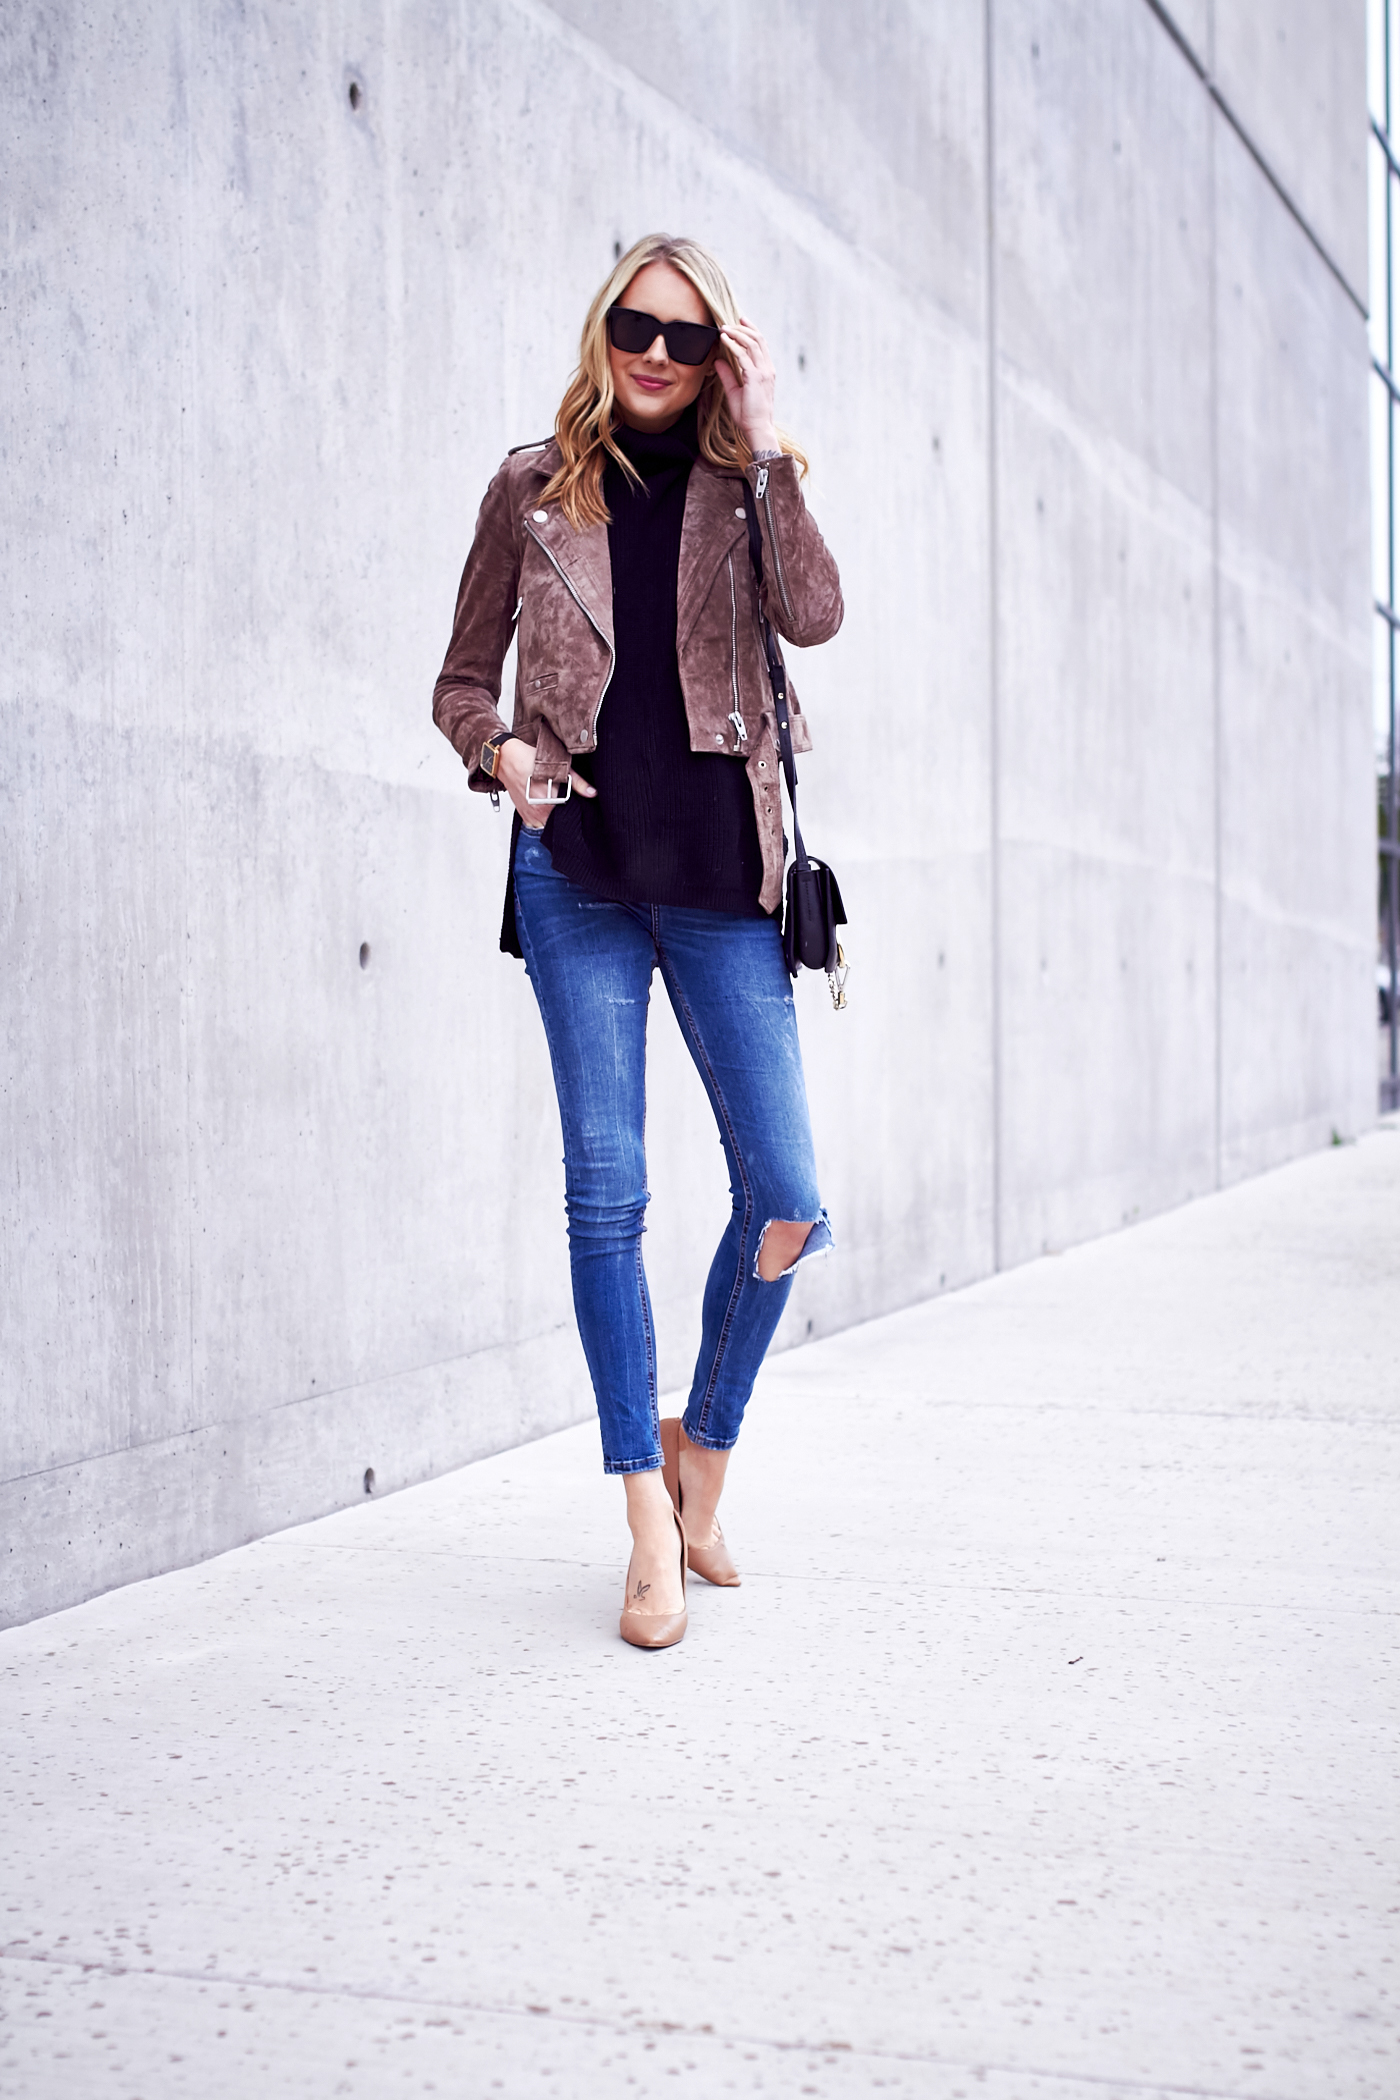 fashion-jackson-black-sunglasses-blanknyc-morning-suede-moto-jacket-black-sweater-ripped-denim-jeans-nude-pumps